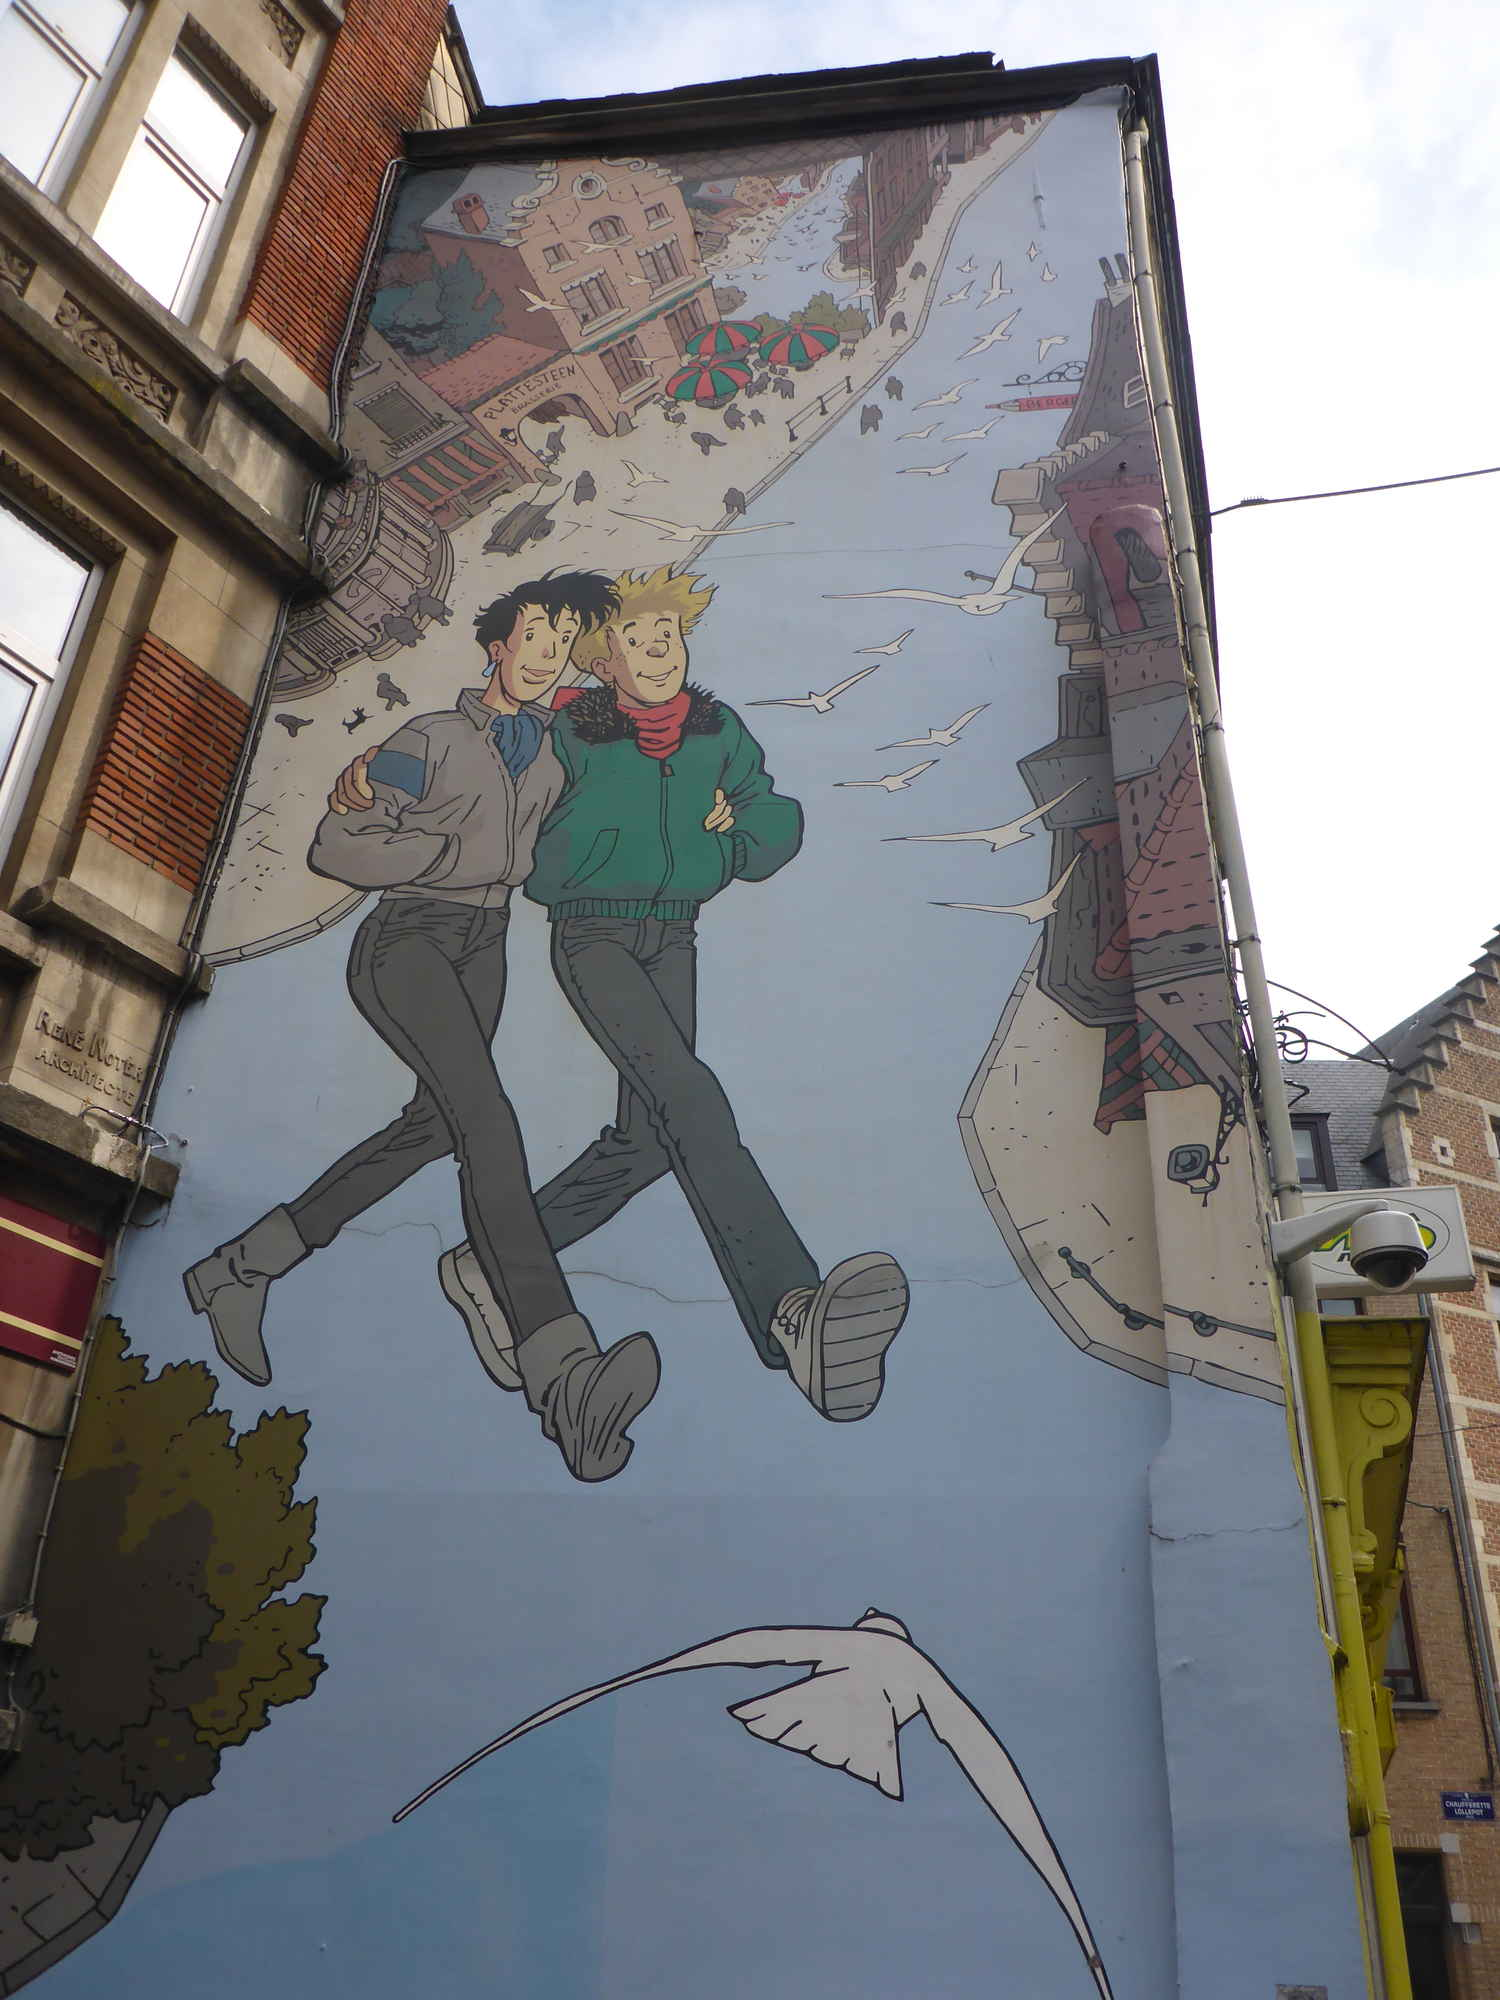 Comic Book Walk, Brussels, Belgium